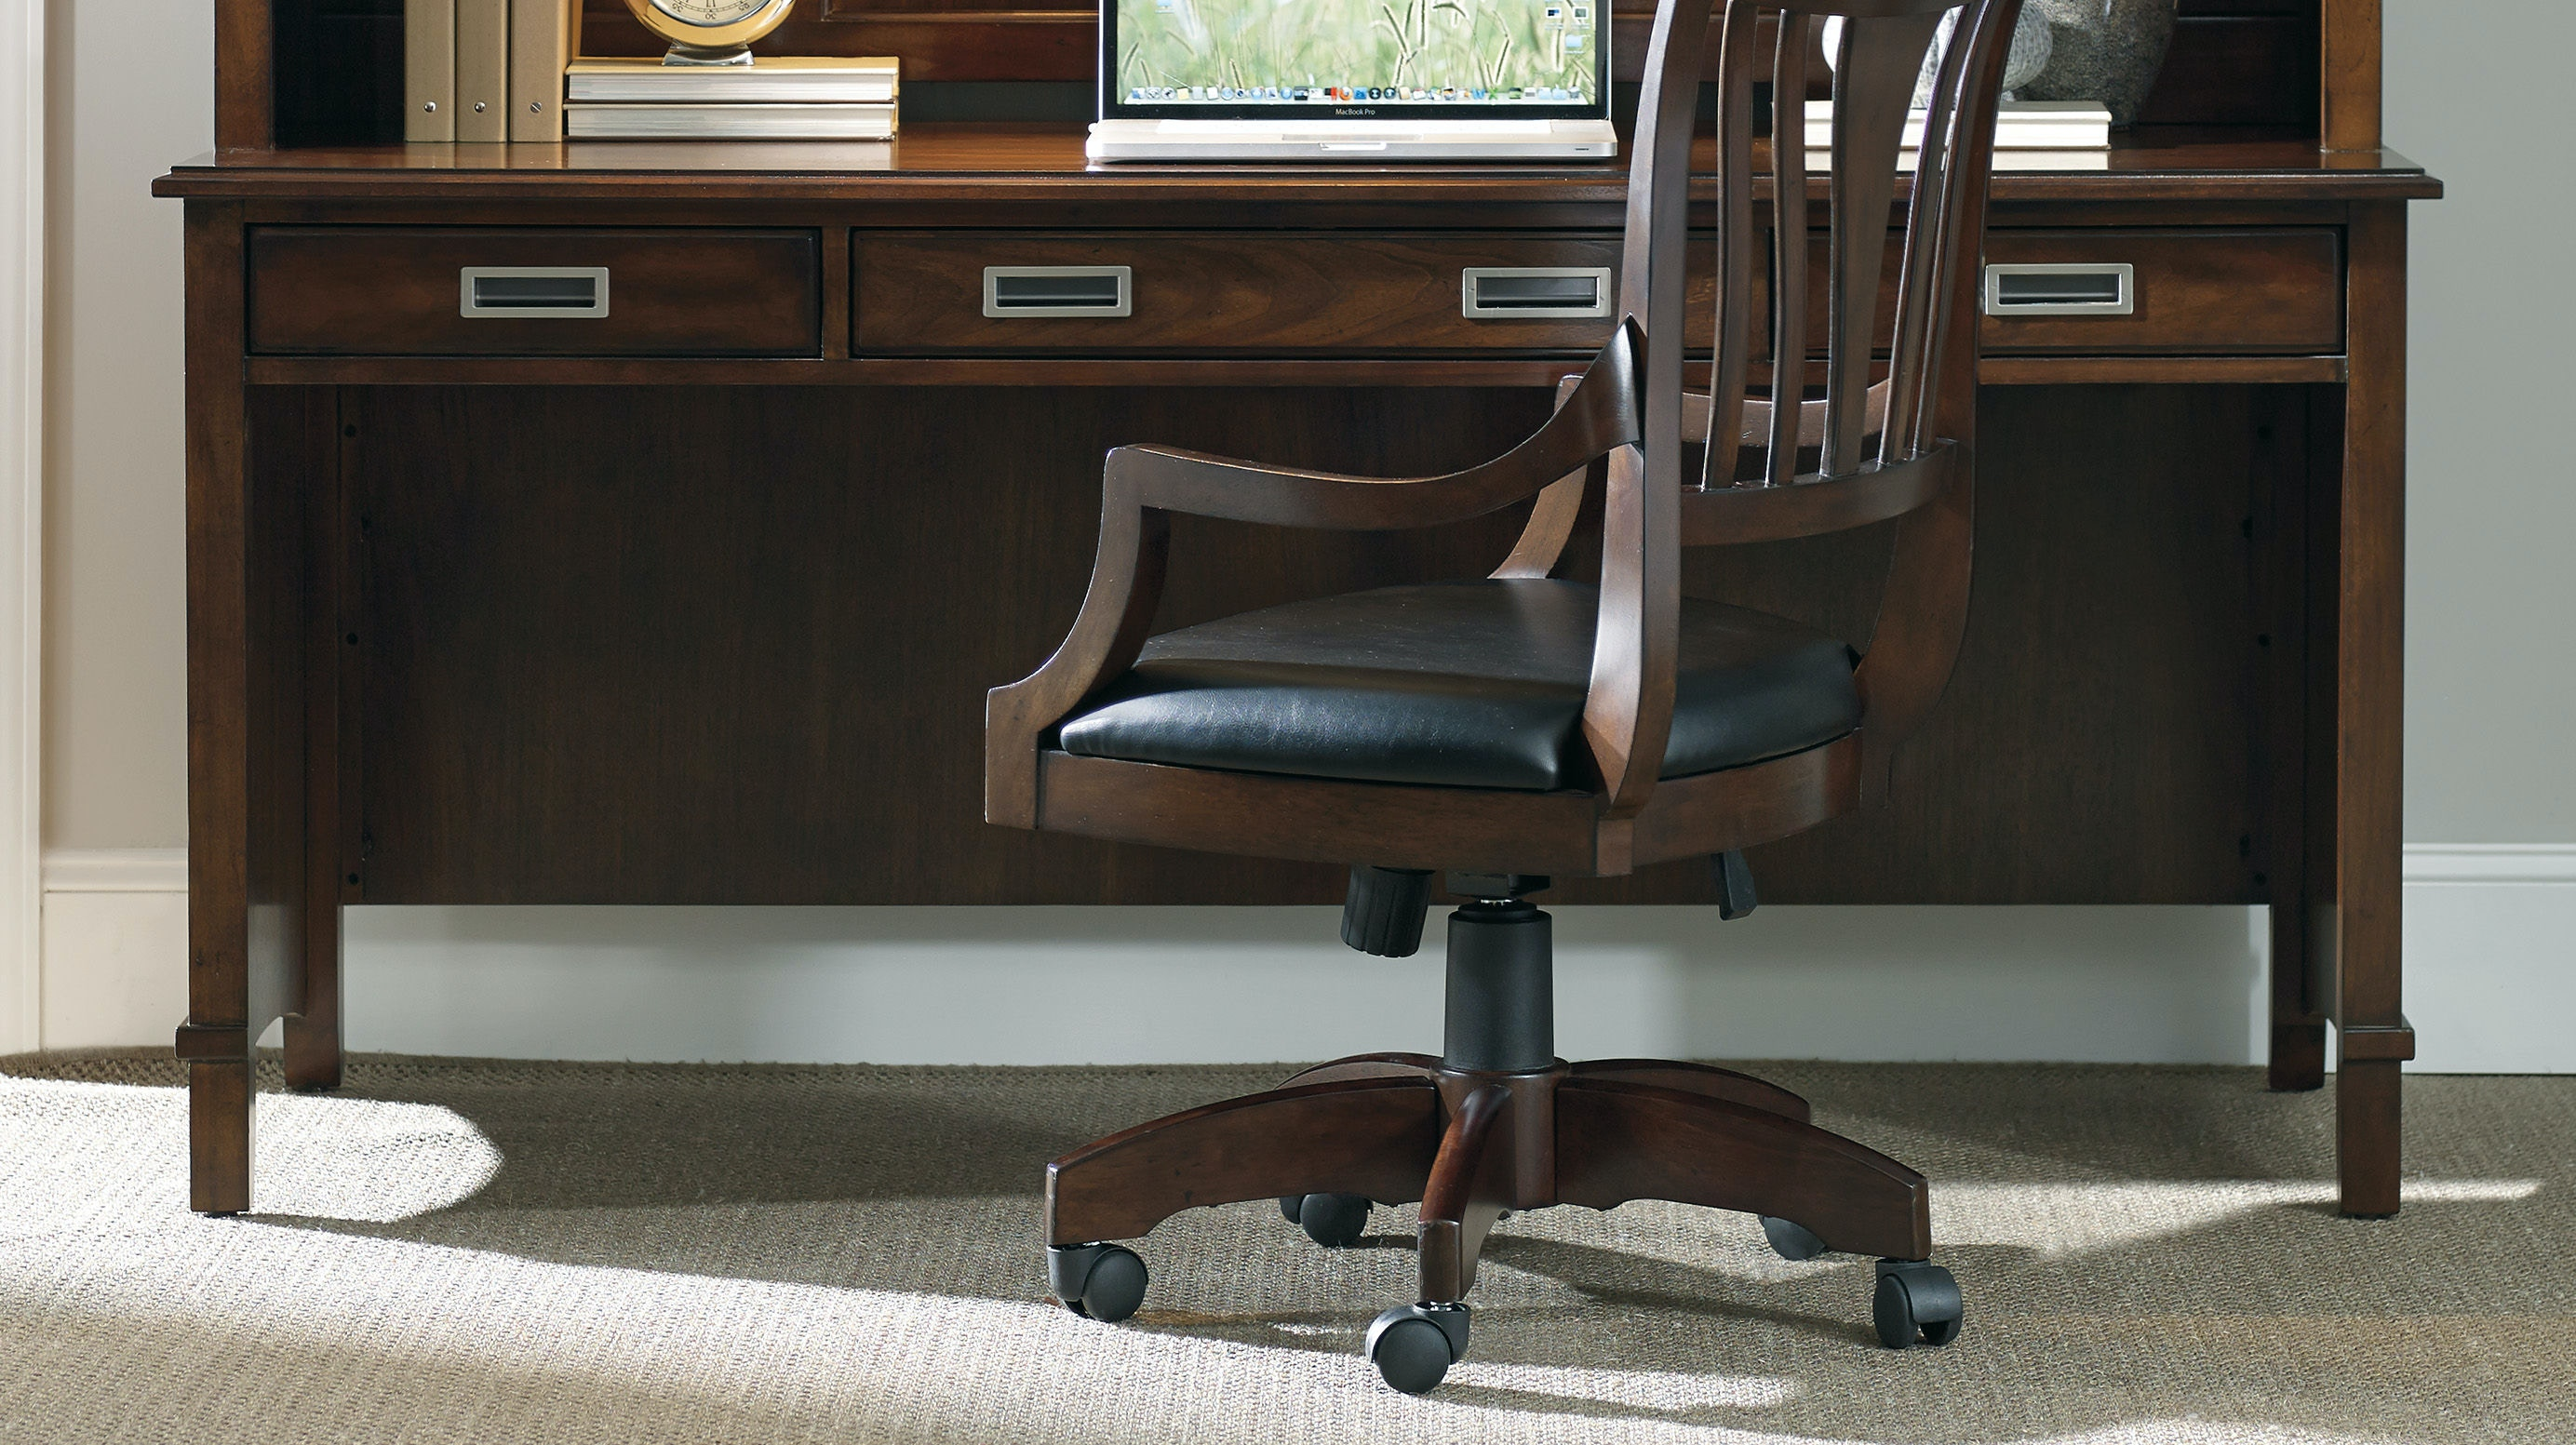 Innovative  Likewise 86795524 As Well 1385246 On Office Furniture Austin Tx